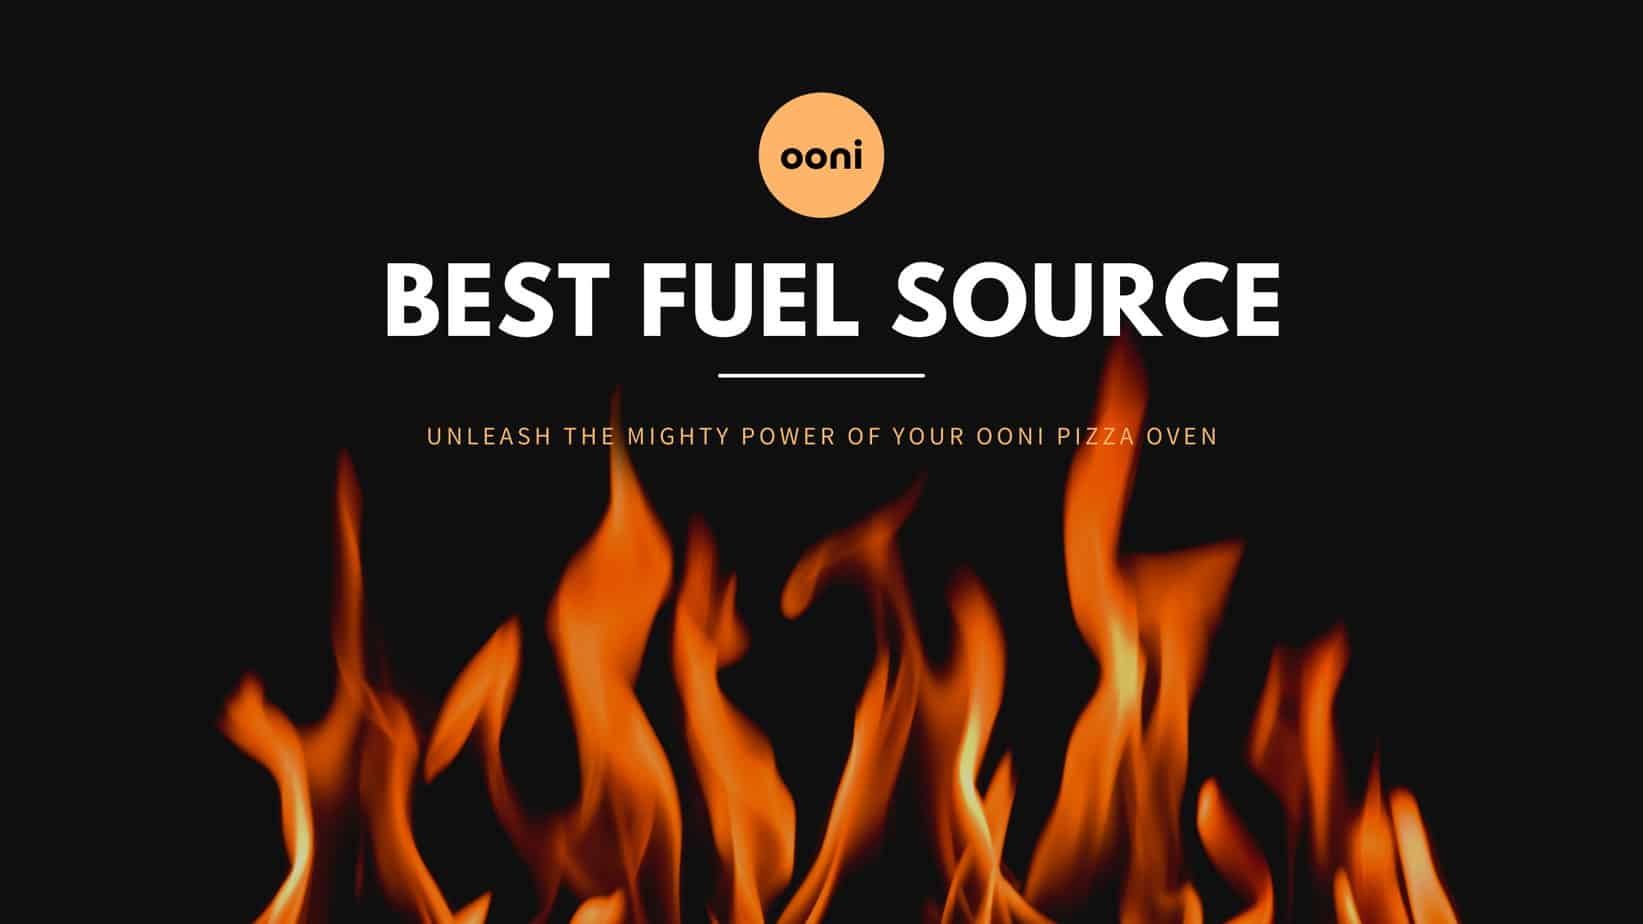 Best Fuel Source for Ooni Pizza Oven